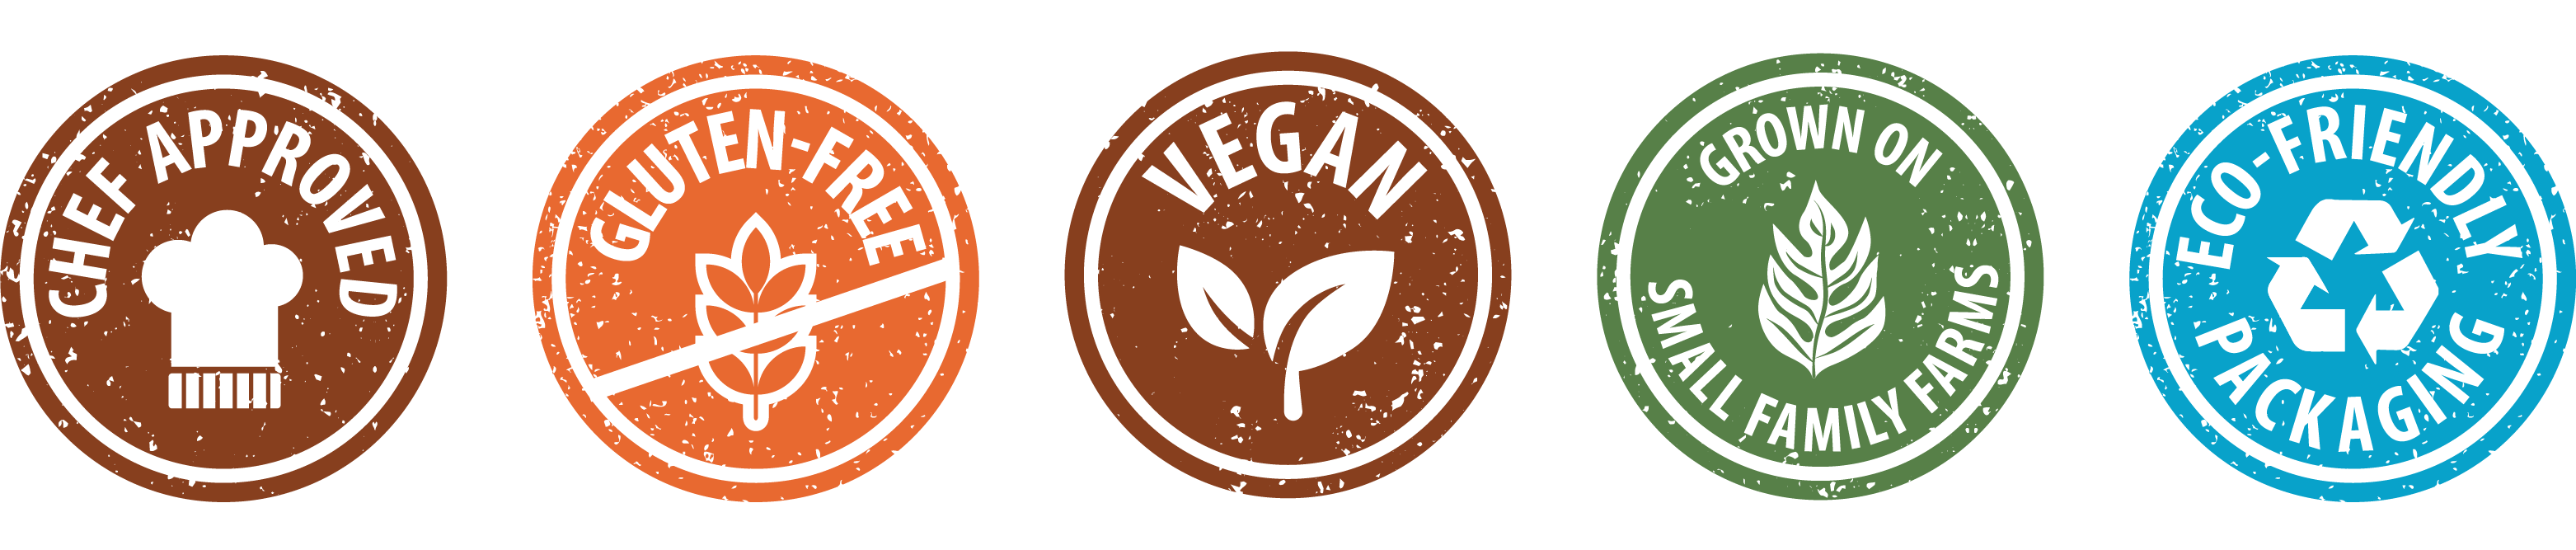 chef approved, gluten-free, vegan, grown on small family farms, eco-friendly packaging